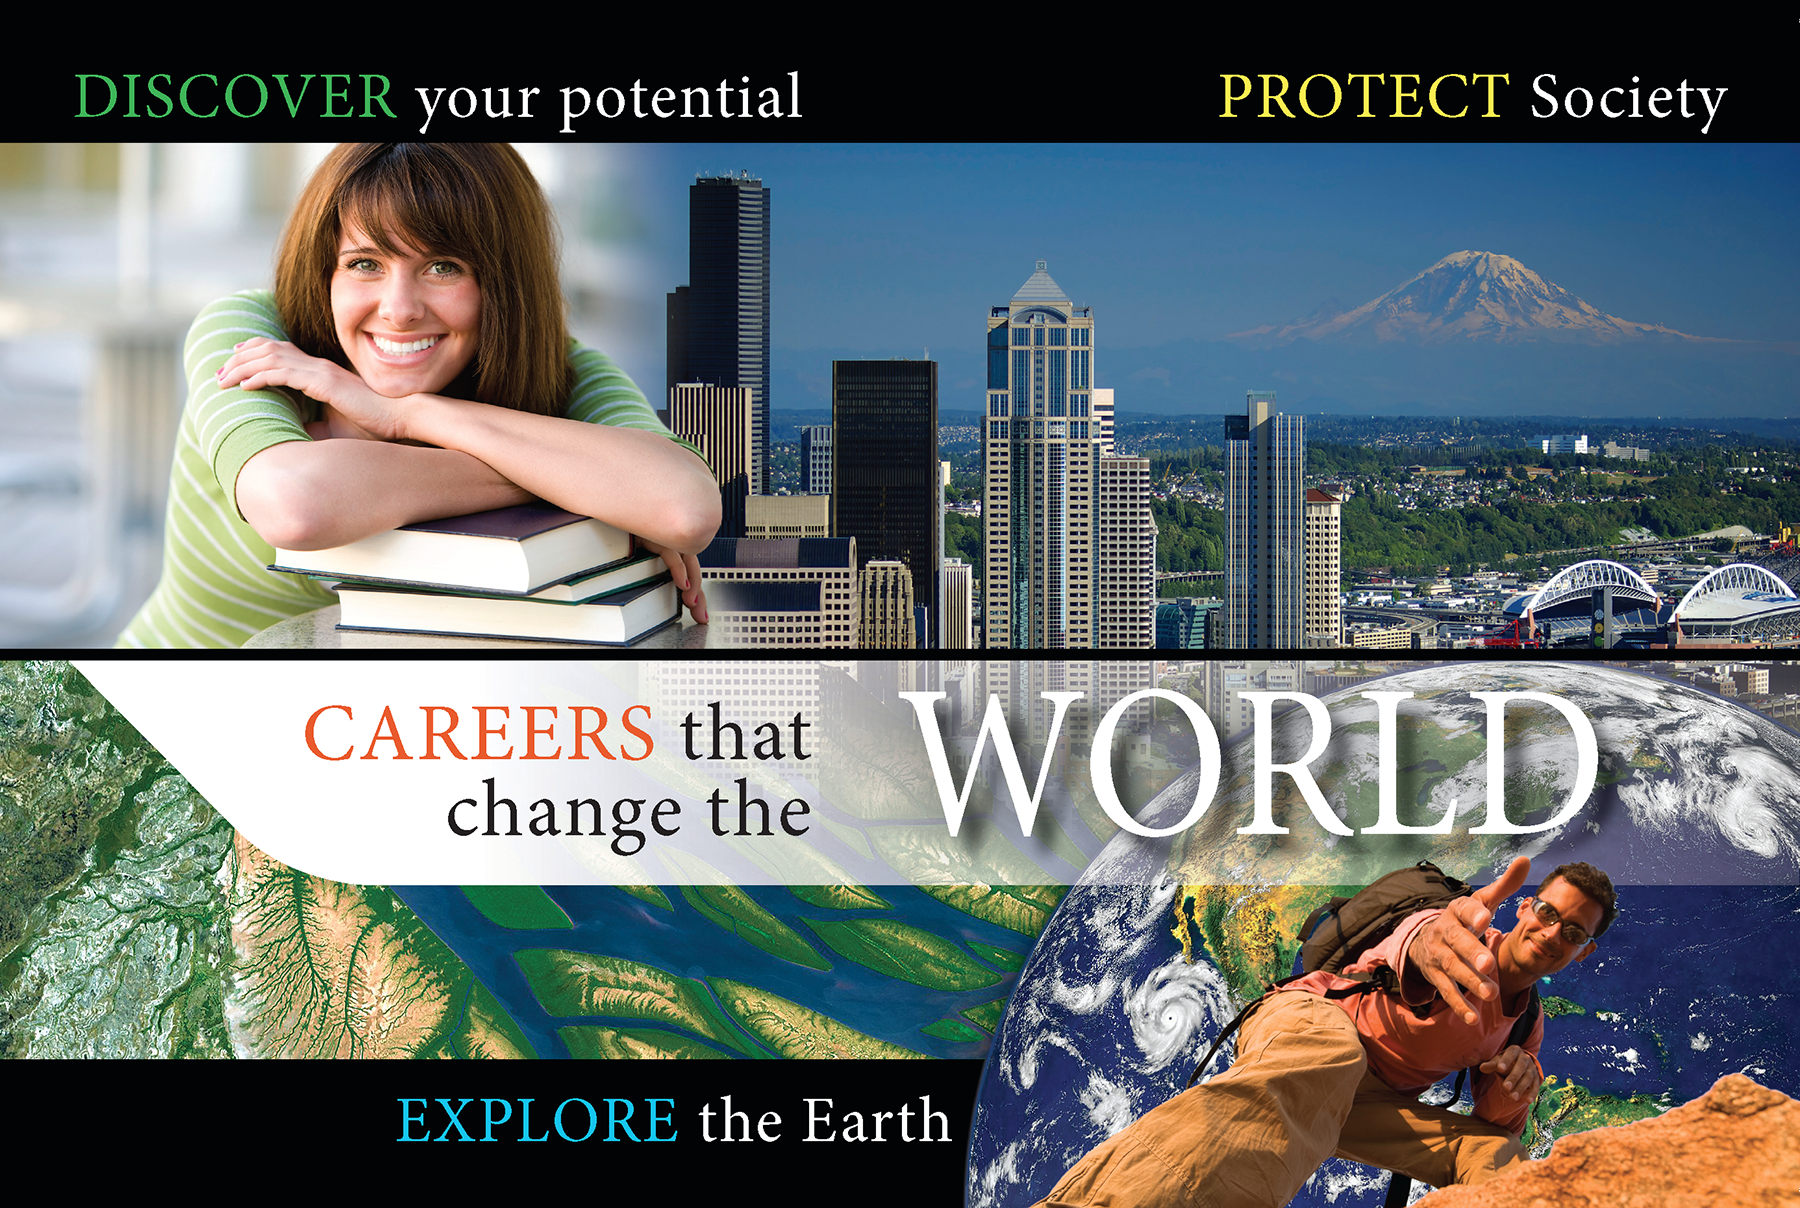 Careers that Change the World